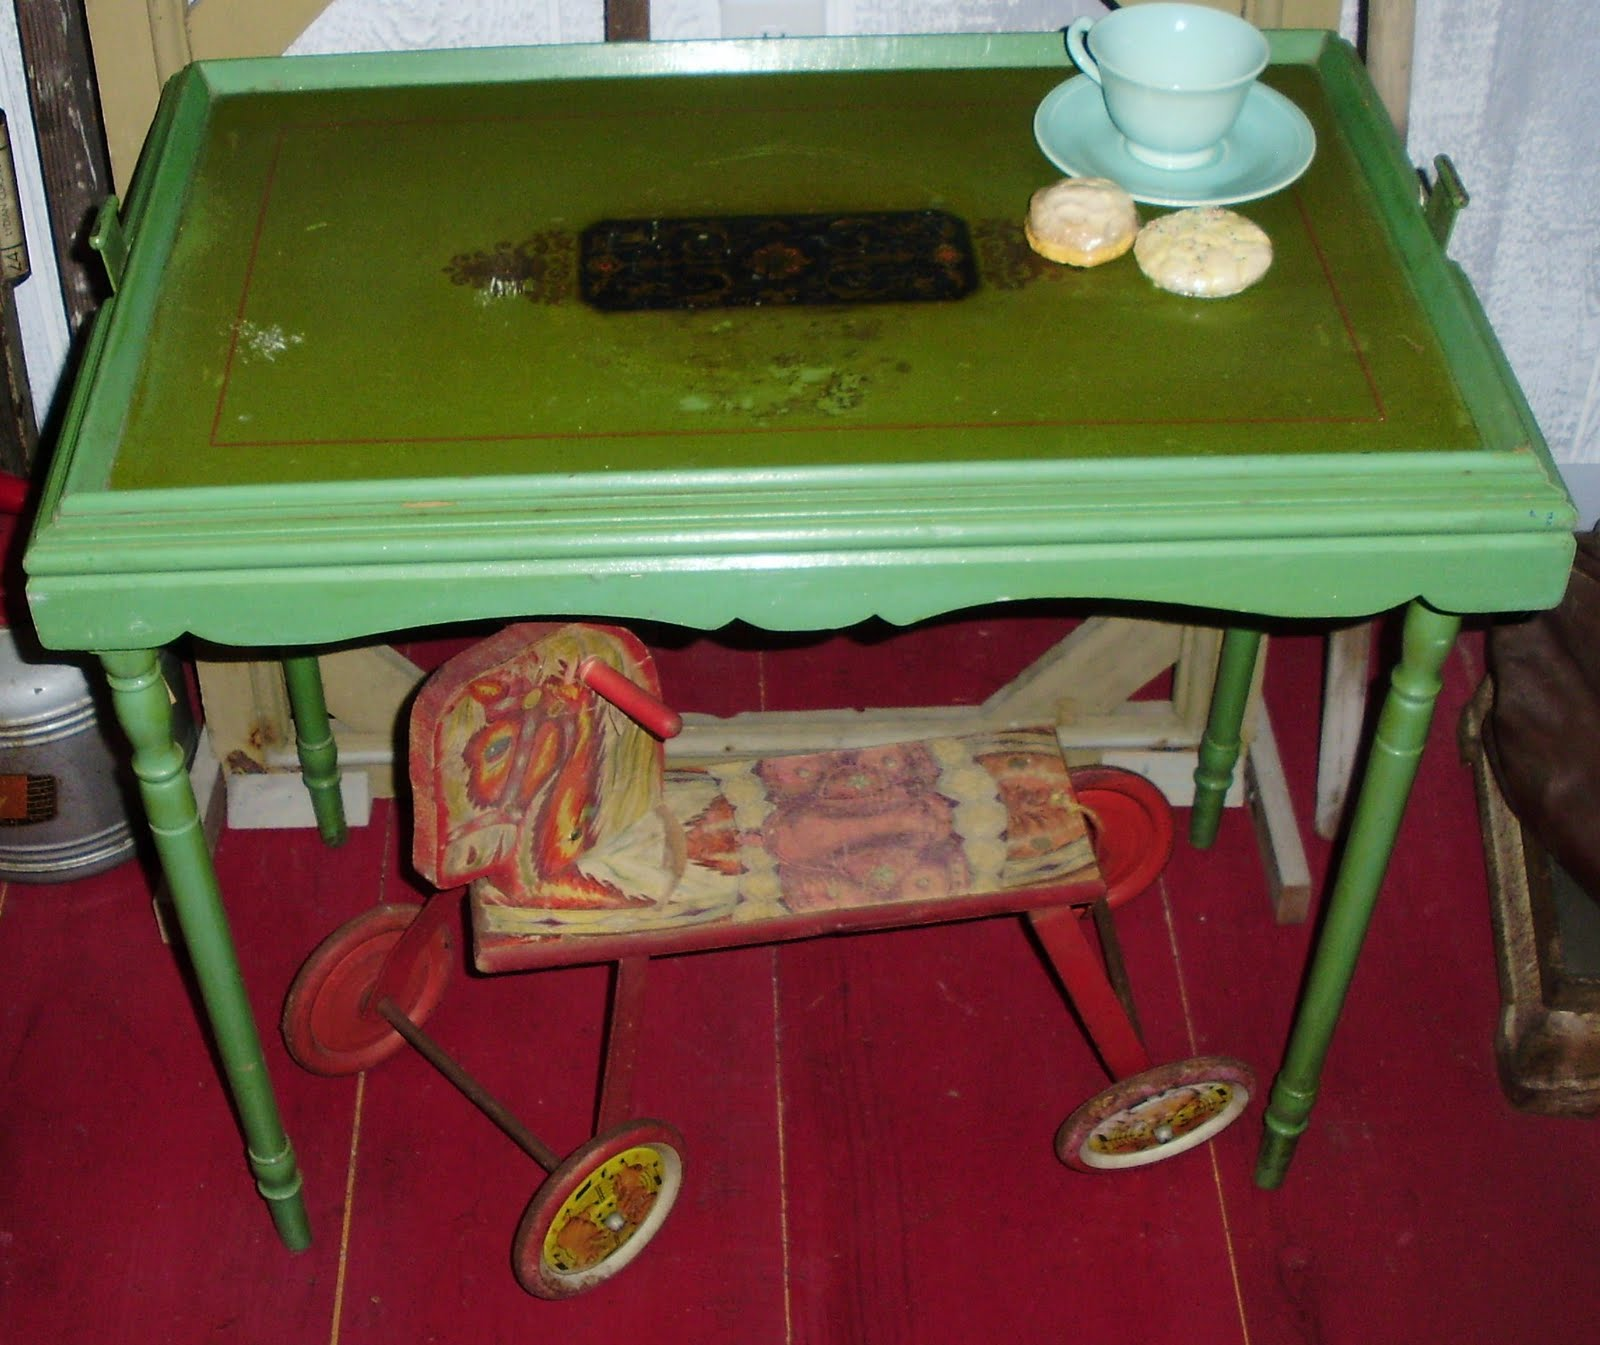 Pretty Little Folding Tray Table Has A Stenciled Design On Top. Table  Measures 28 By 18 Inches And Stands 24 Inches Tall. Folds Up Easily When  Not Needed ...